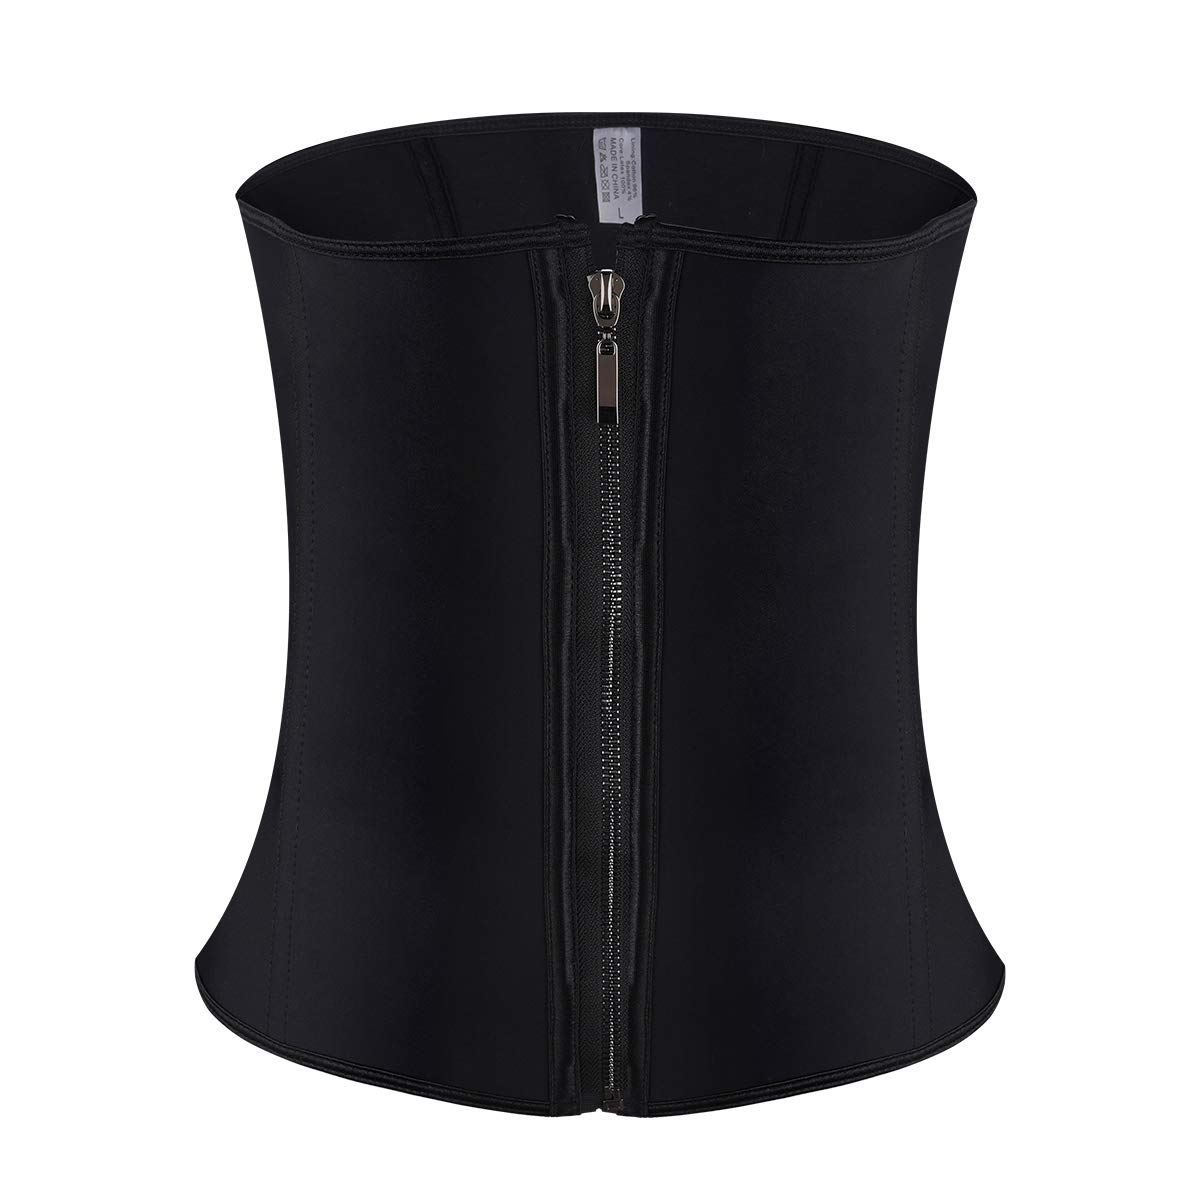 SUMEIYAN Womens Steel Boned Waist Trainer Belt with Zipper and Hooks for Weight Loss